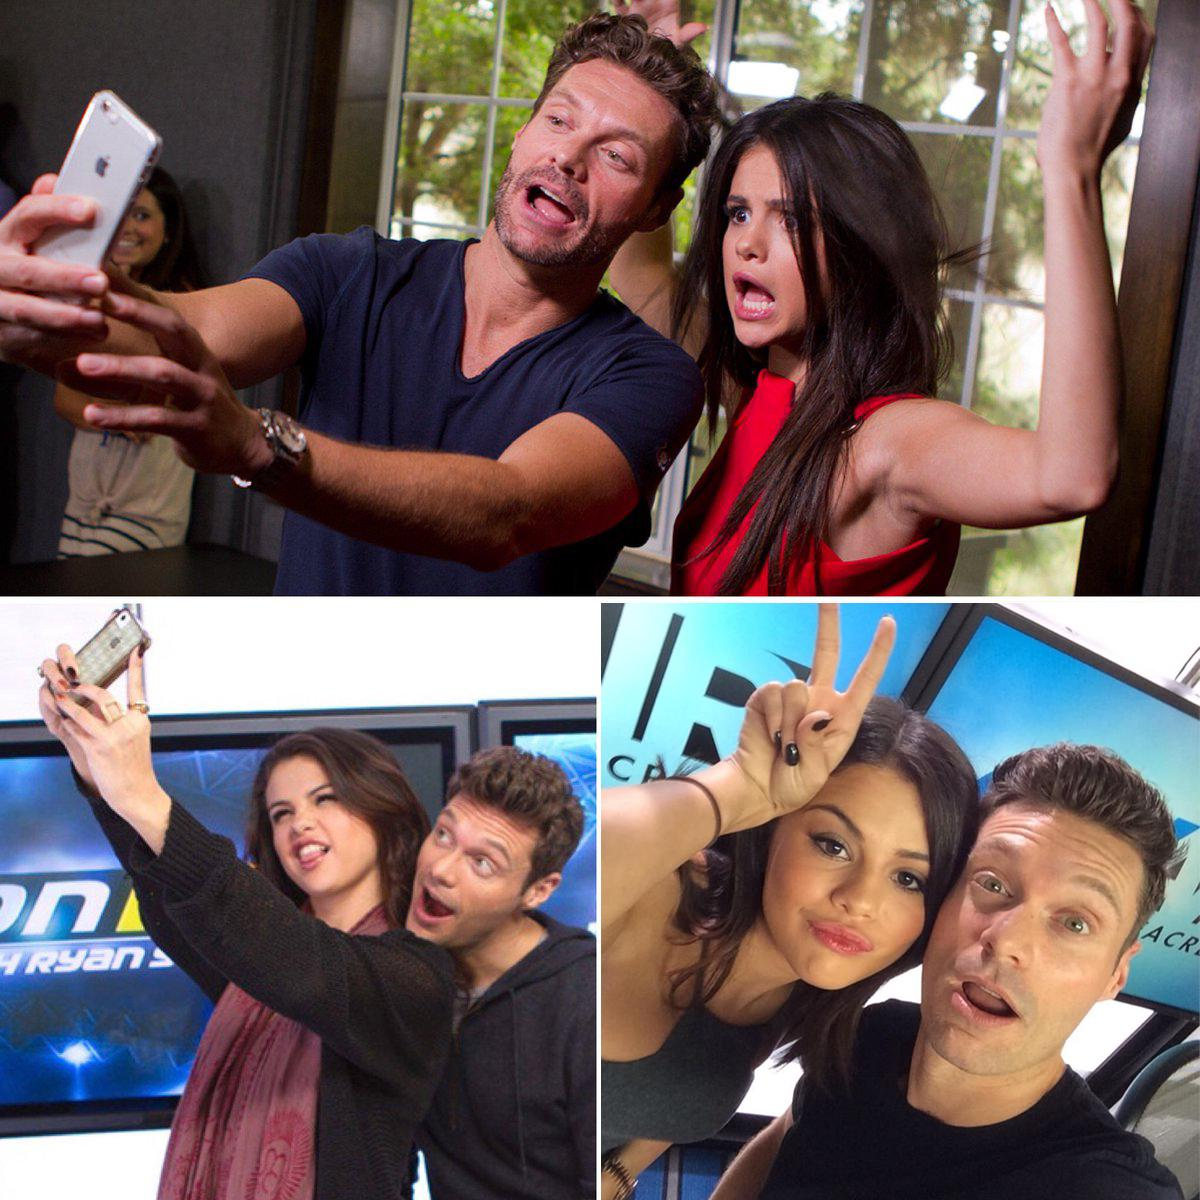 Tomorrow @selenagomez stops by #kellyandryan! See you soon SG – let's add another selfie to the album.